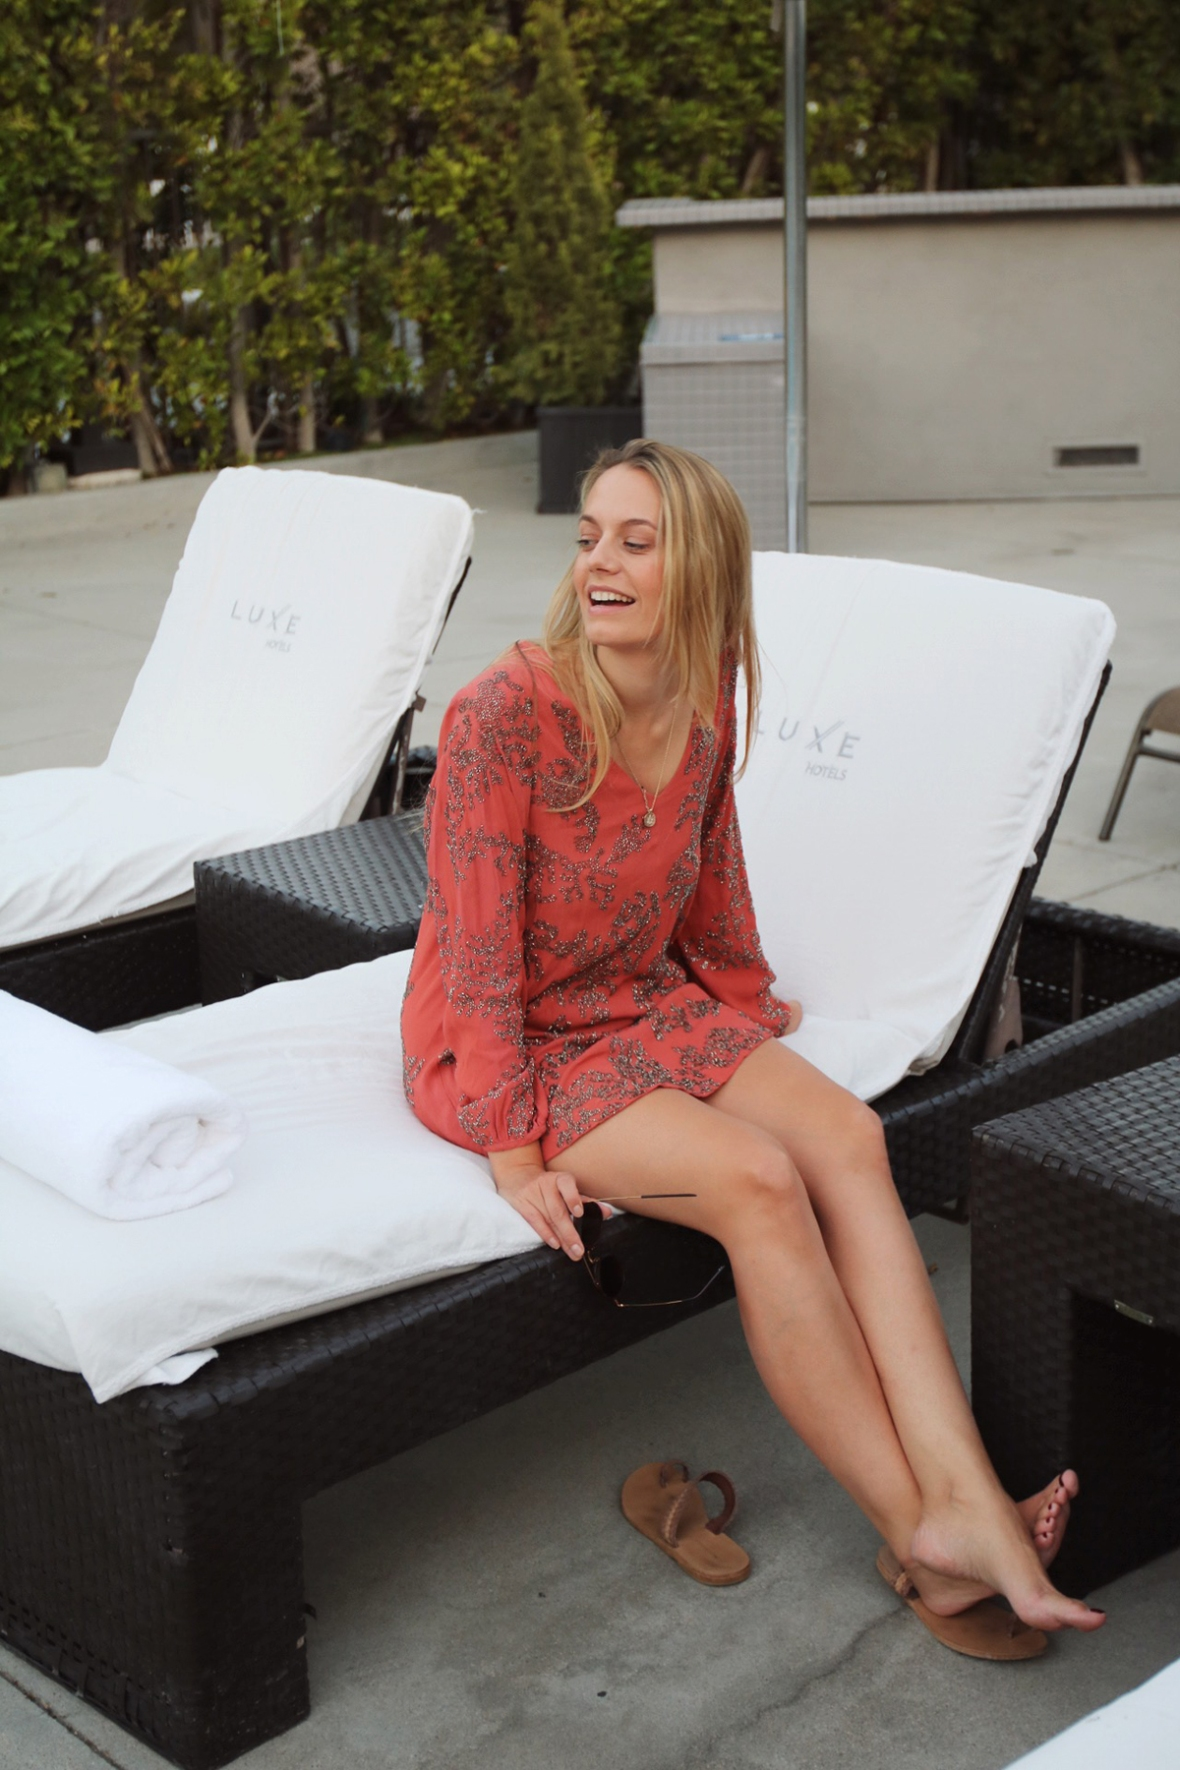 blogger-review-luxe-sunset-boulevard-hotel-los-angeles10